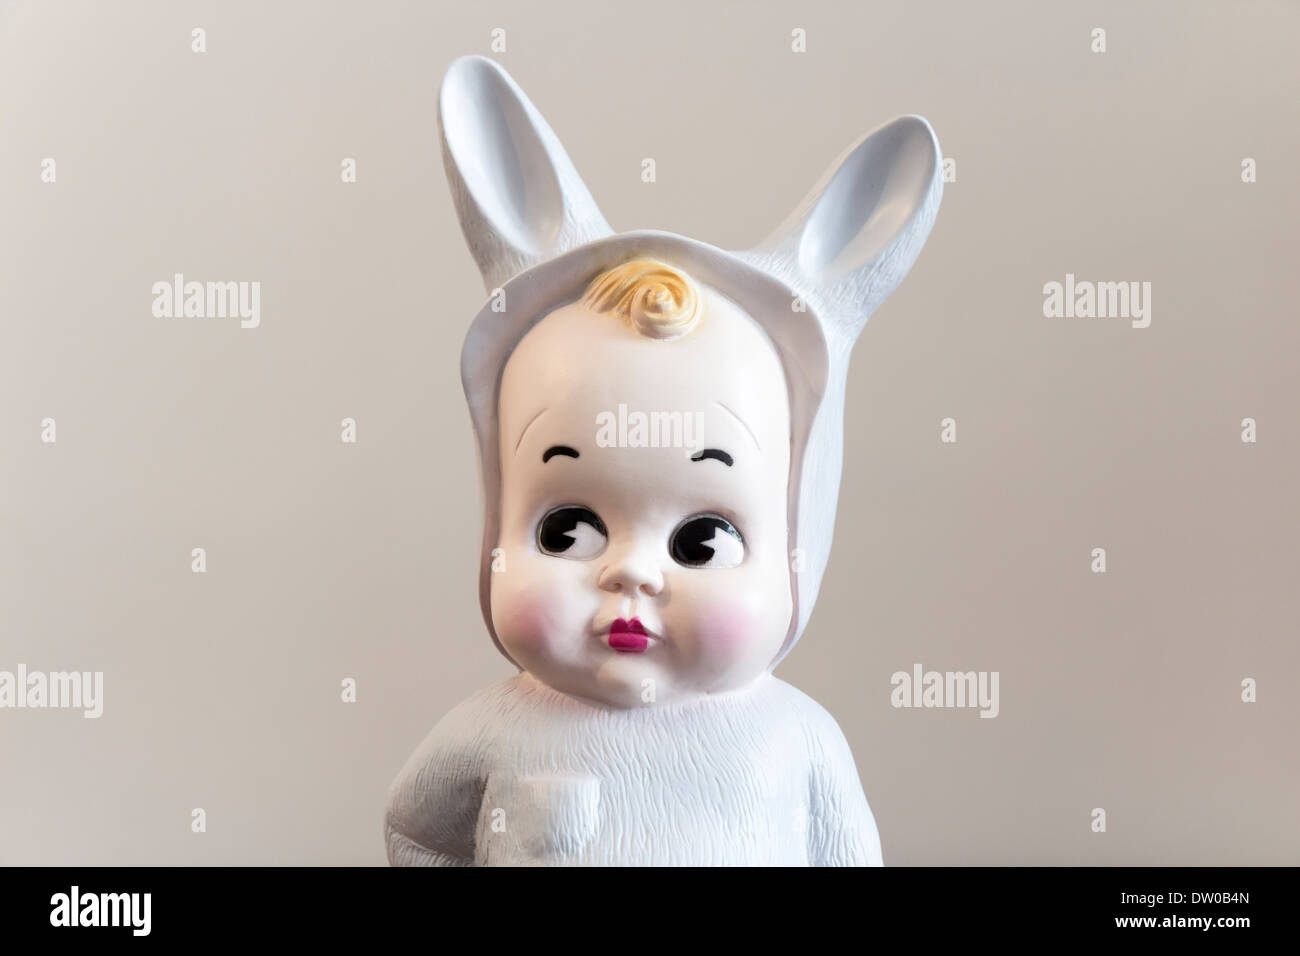 Cute toy of a baby with bunny disguise - Stock Image